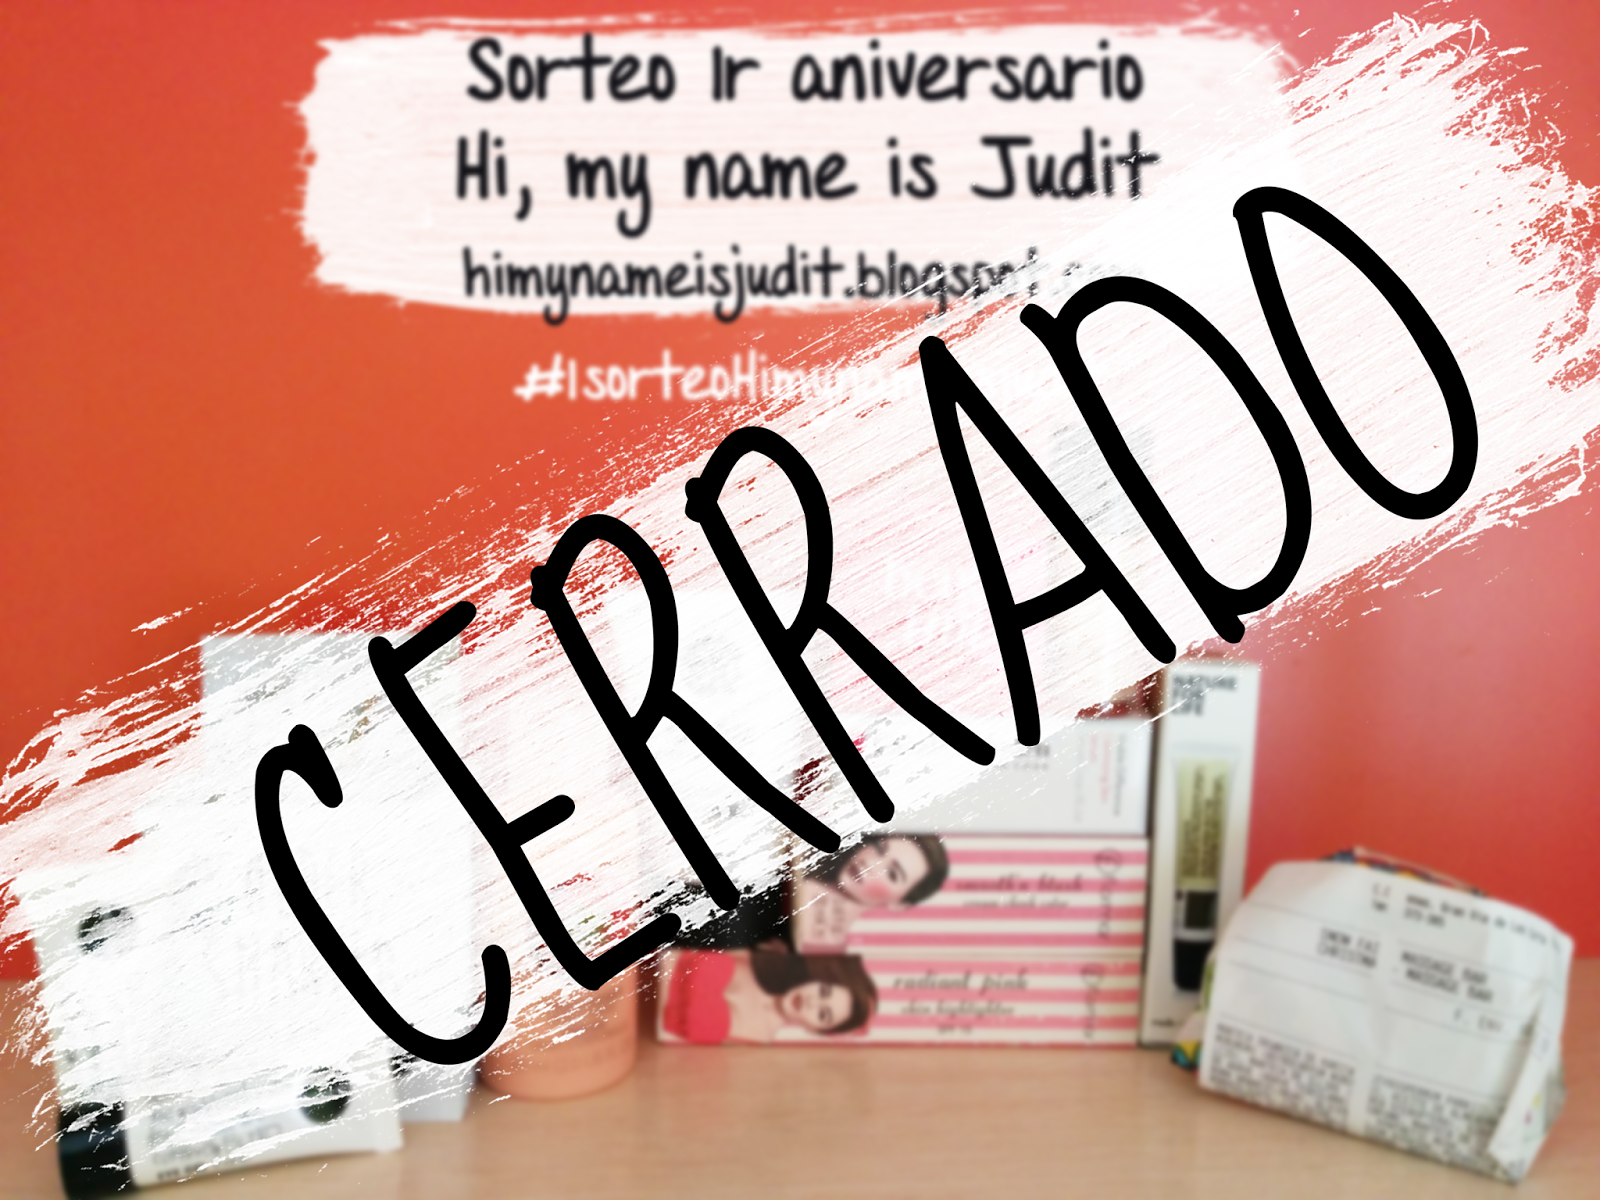 Sorteo 1r aniversario Hi, my name is Judit blog